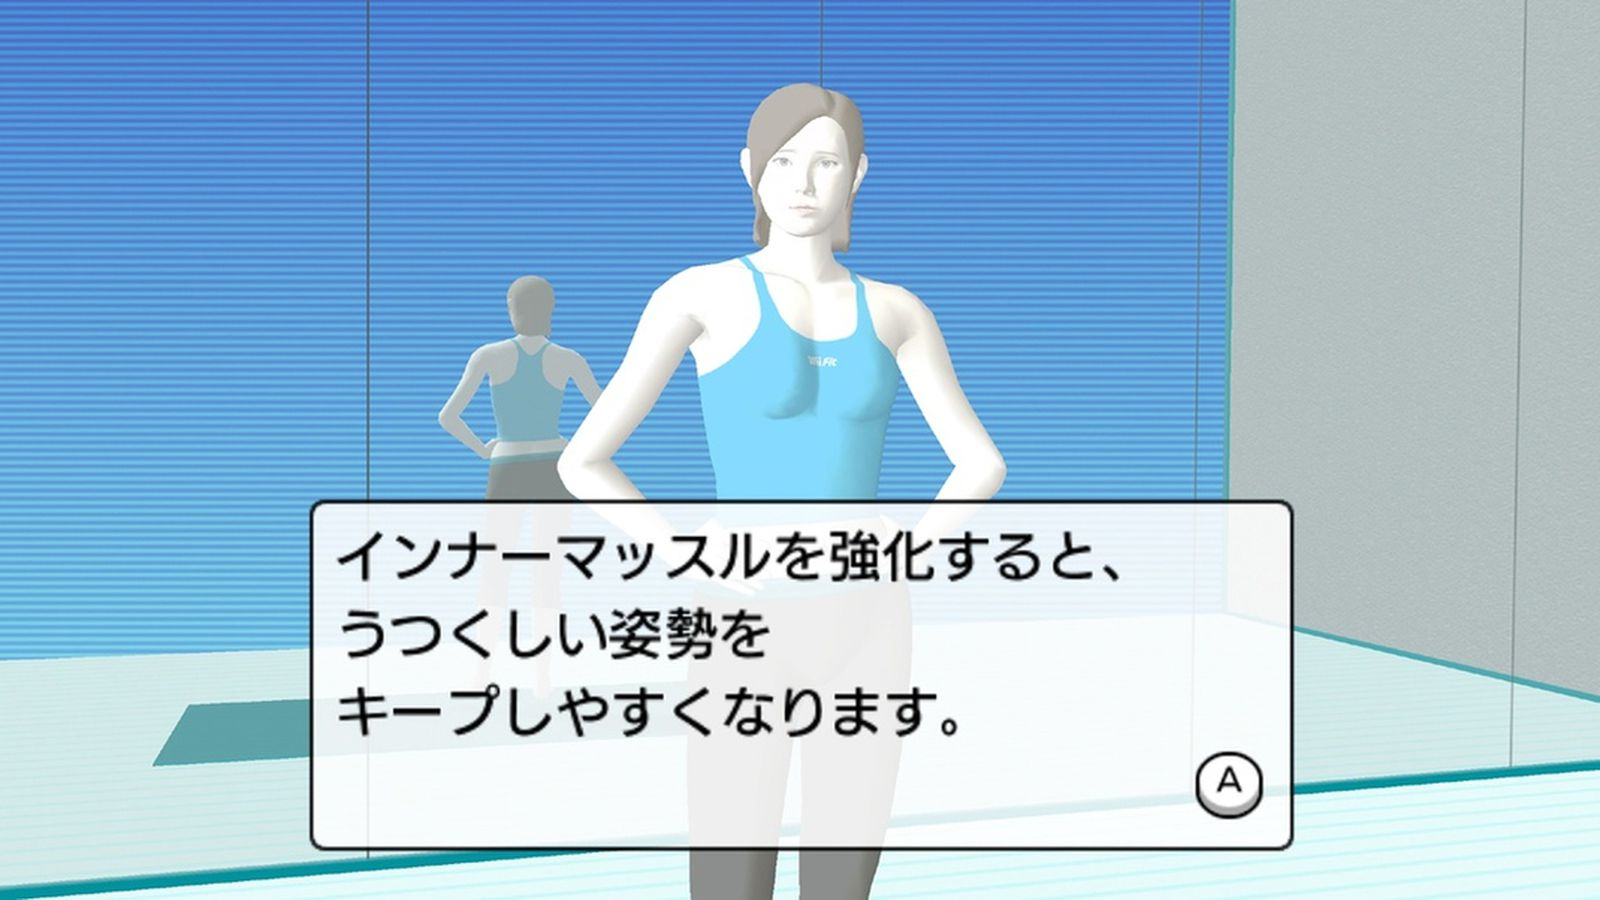 Wii Fit Trainer A Playable Character In Super Smash Bros